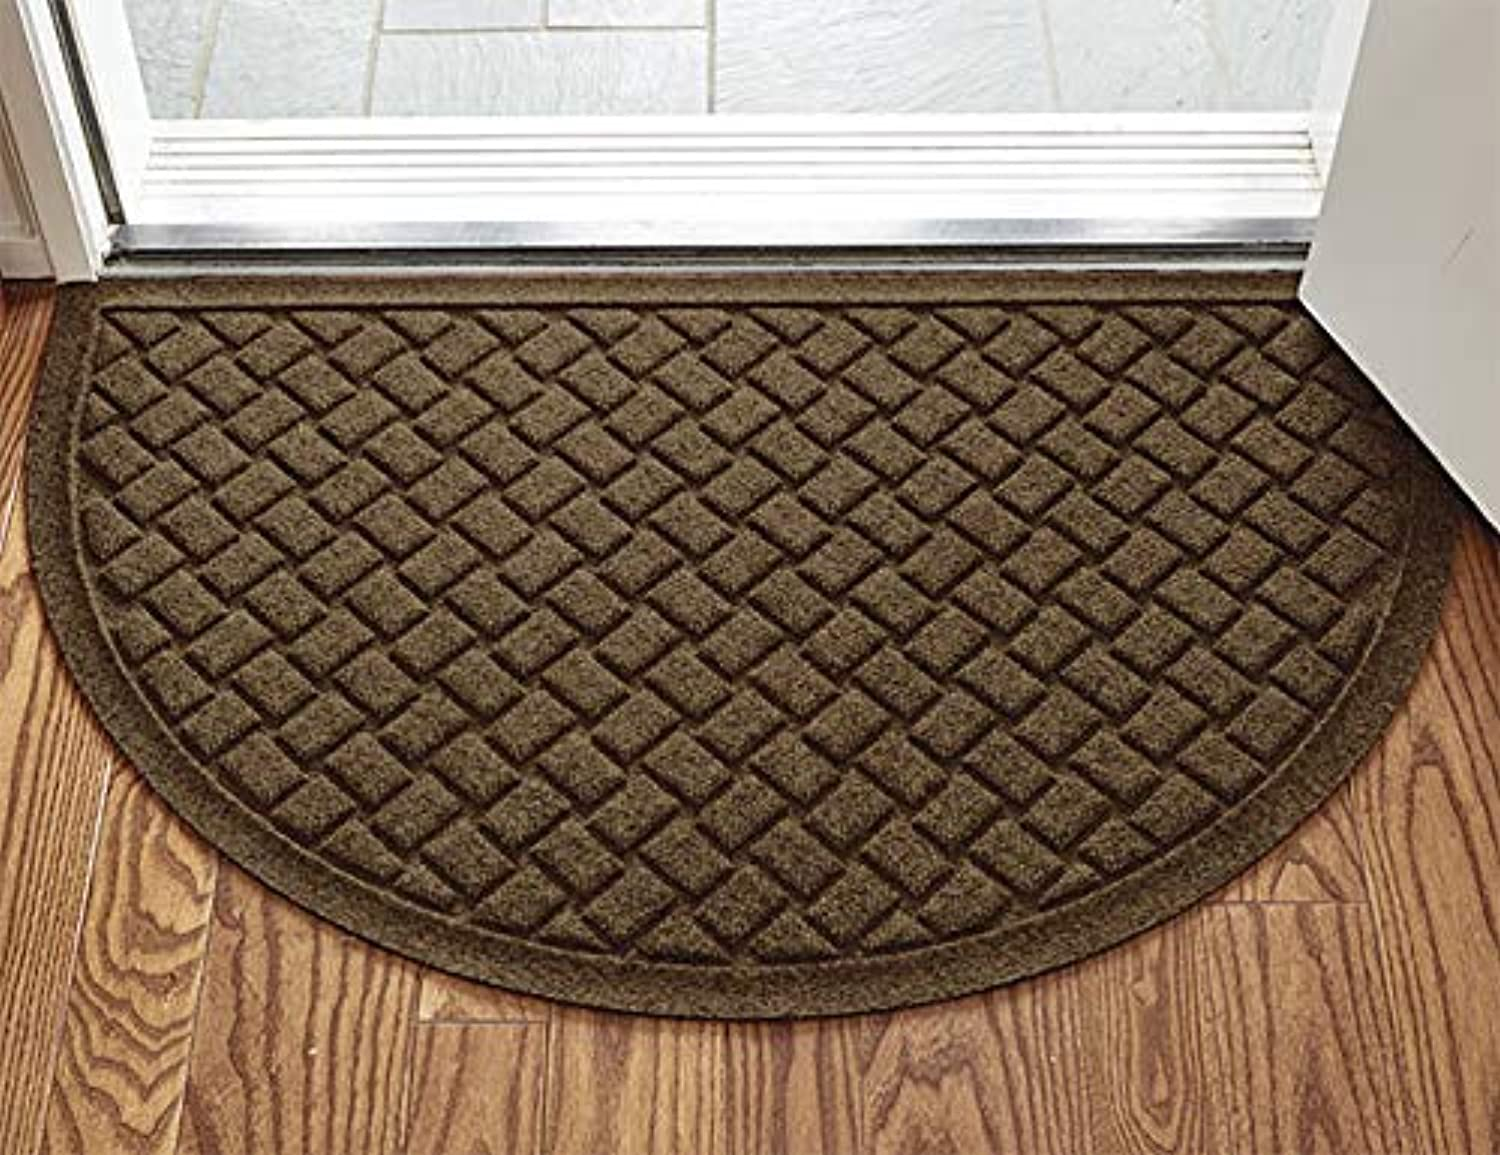 Orvis Basketweave Water Trapper Mat Halfmoon 2' X 3'3 , Dark Brown